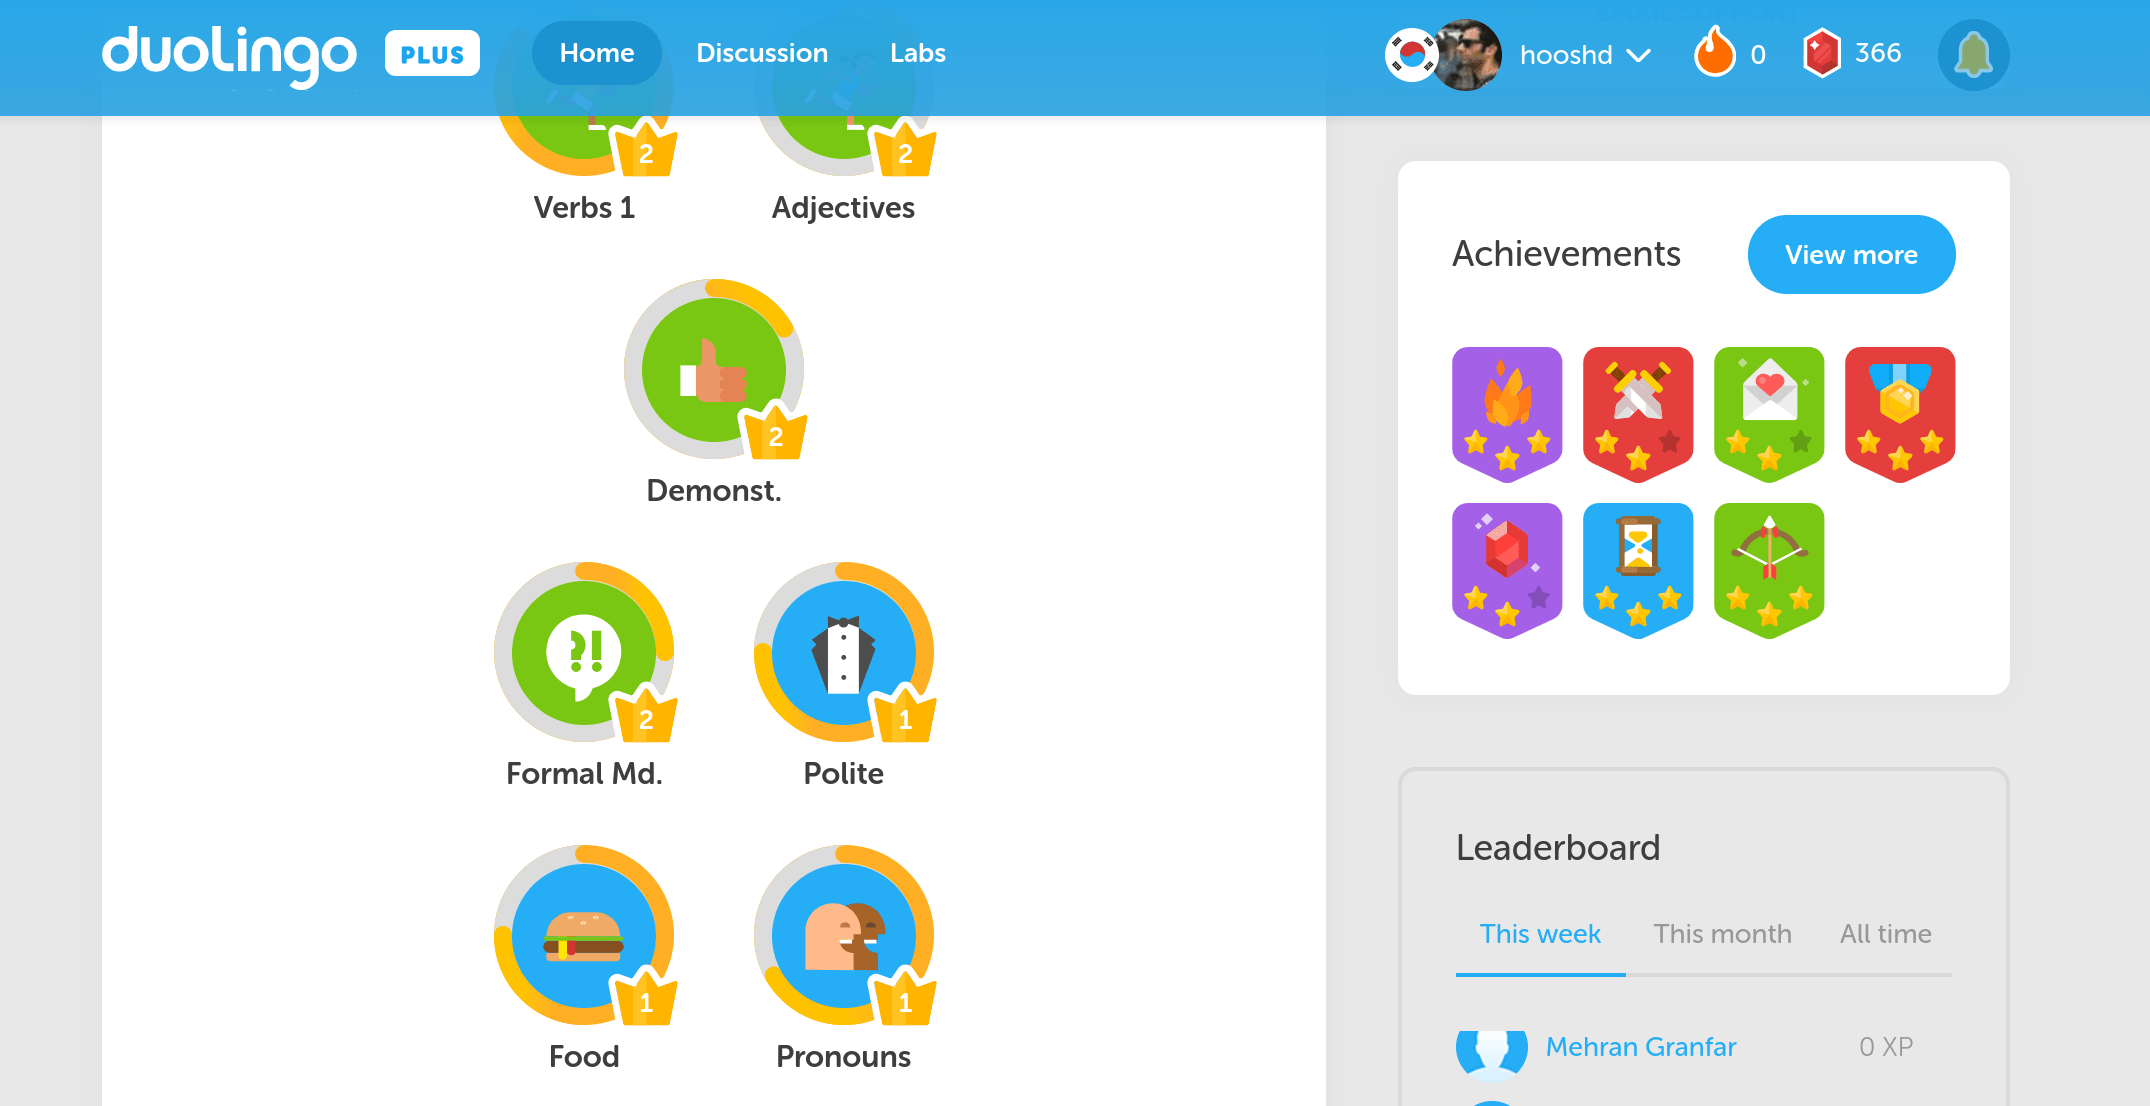 This is Duolingo's interface. Duolingo is the world's most popular language-learning app.